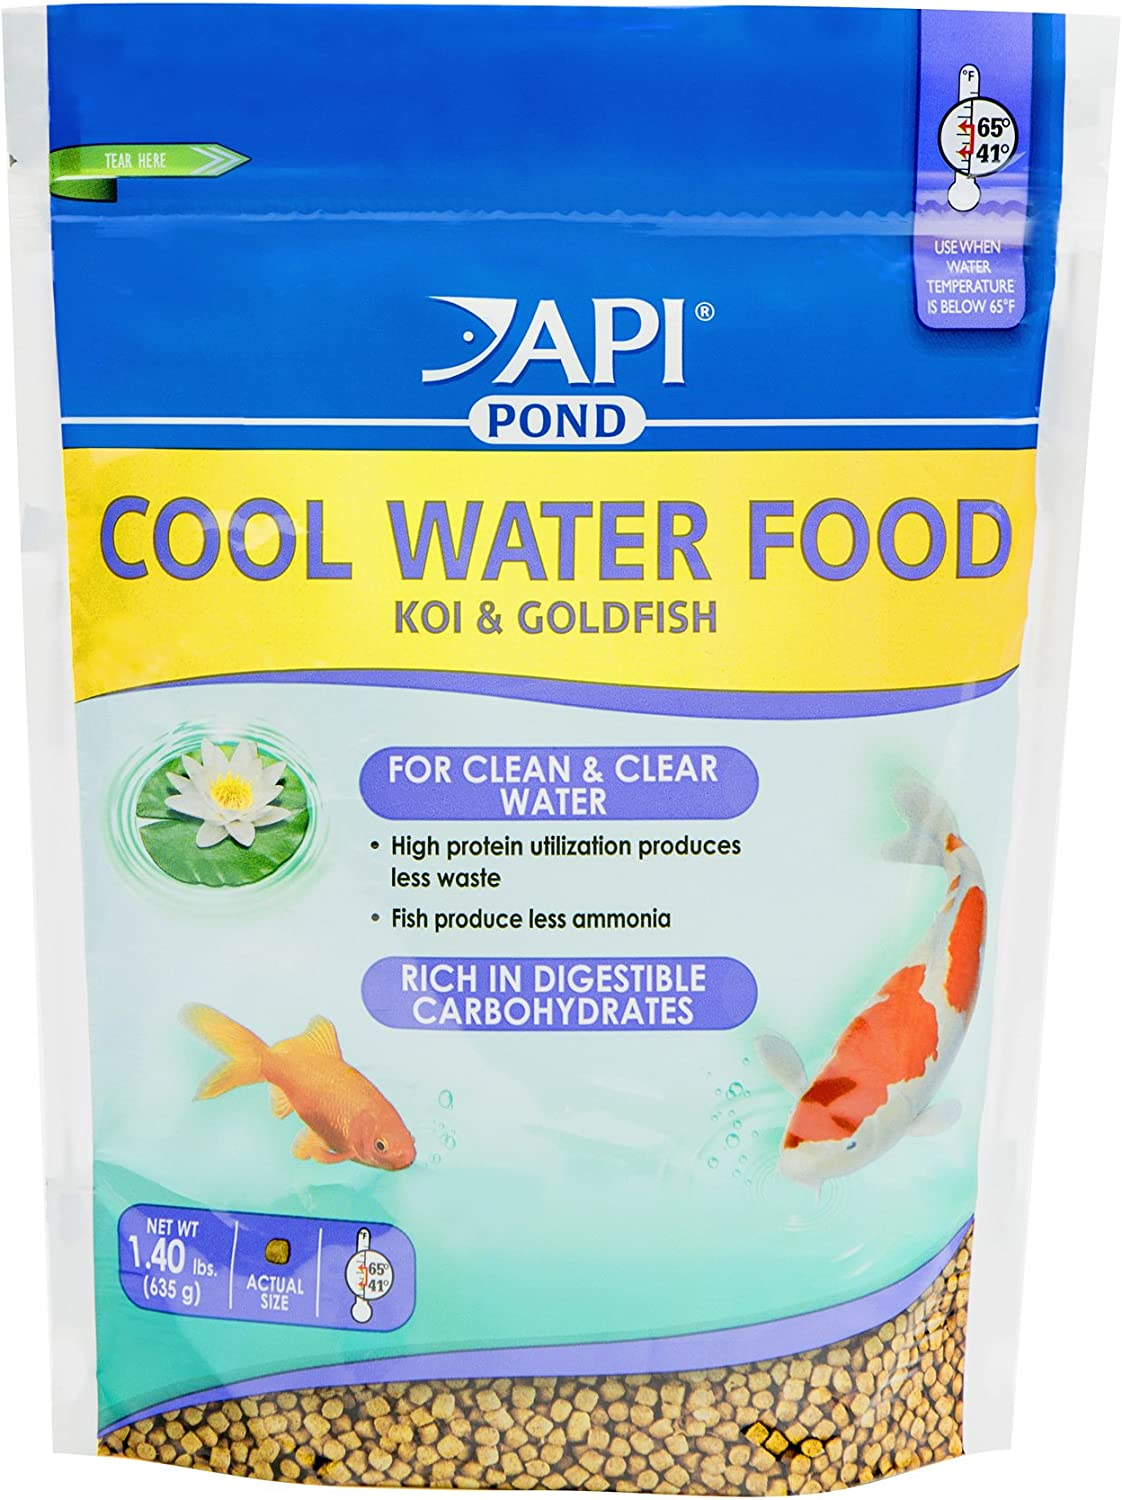 API POND COOL WATER FOOD Pond Fish Food 1.40-Pound Bag